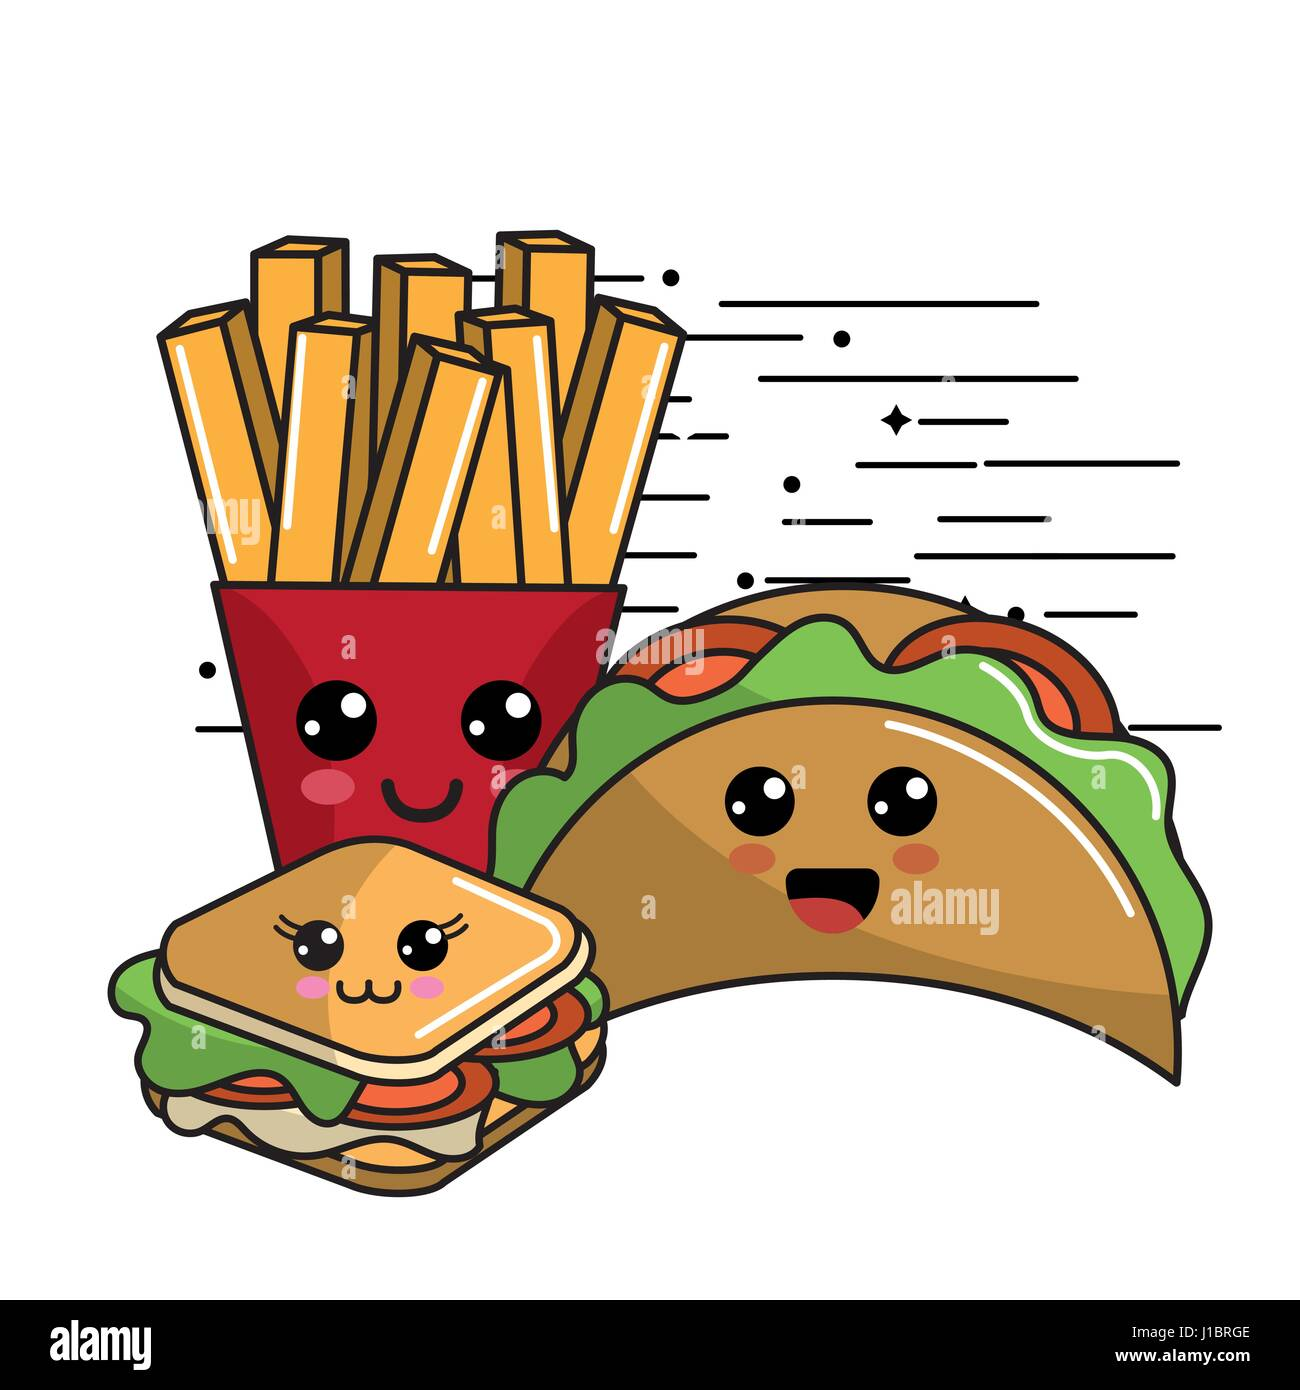 Kawaii Fast Food Icon Adorable Expression Stock Vector Art